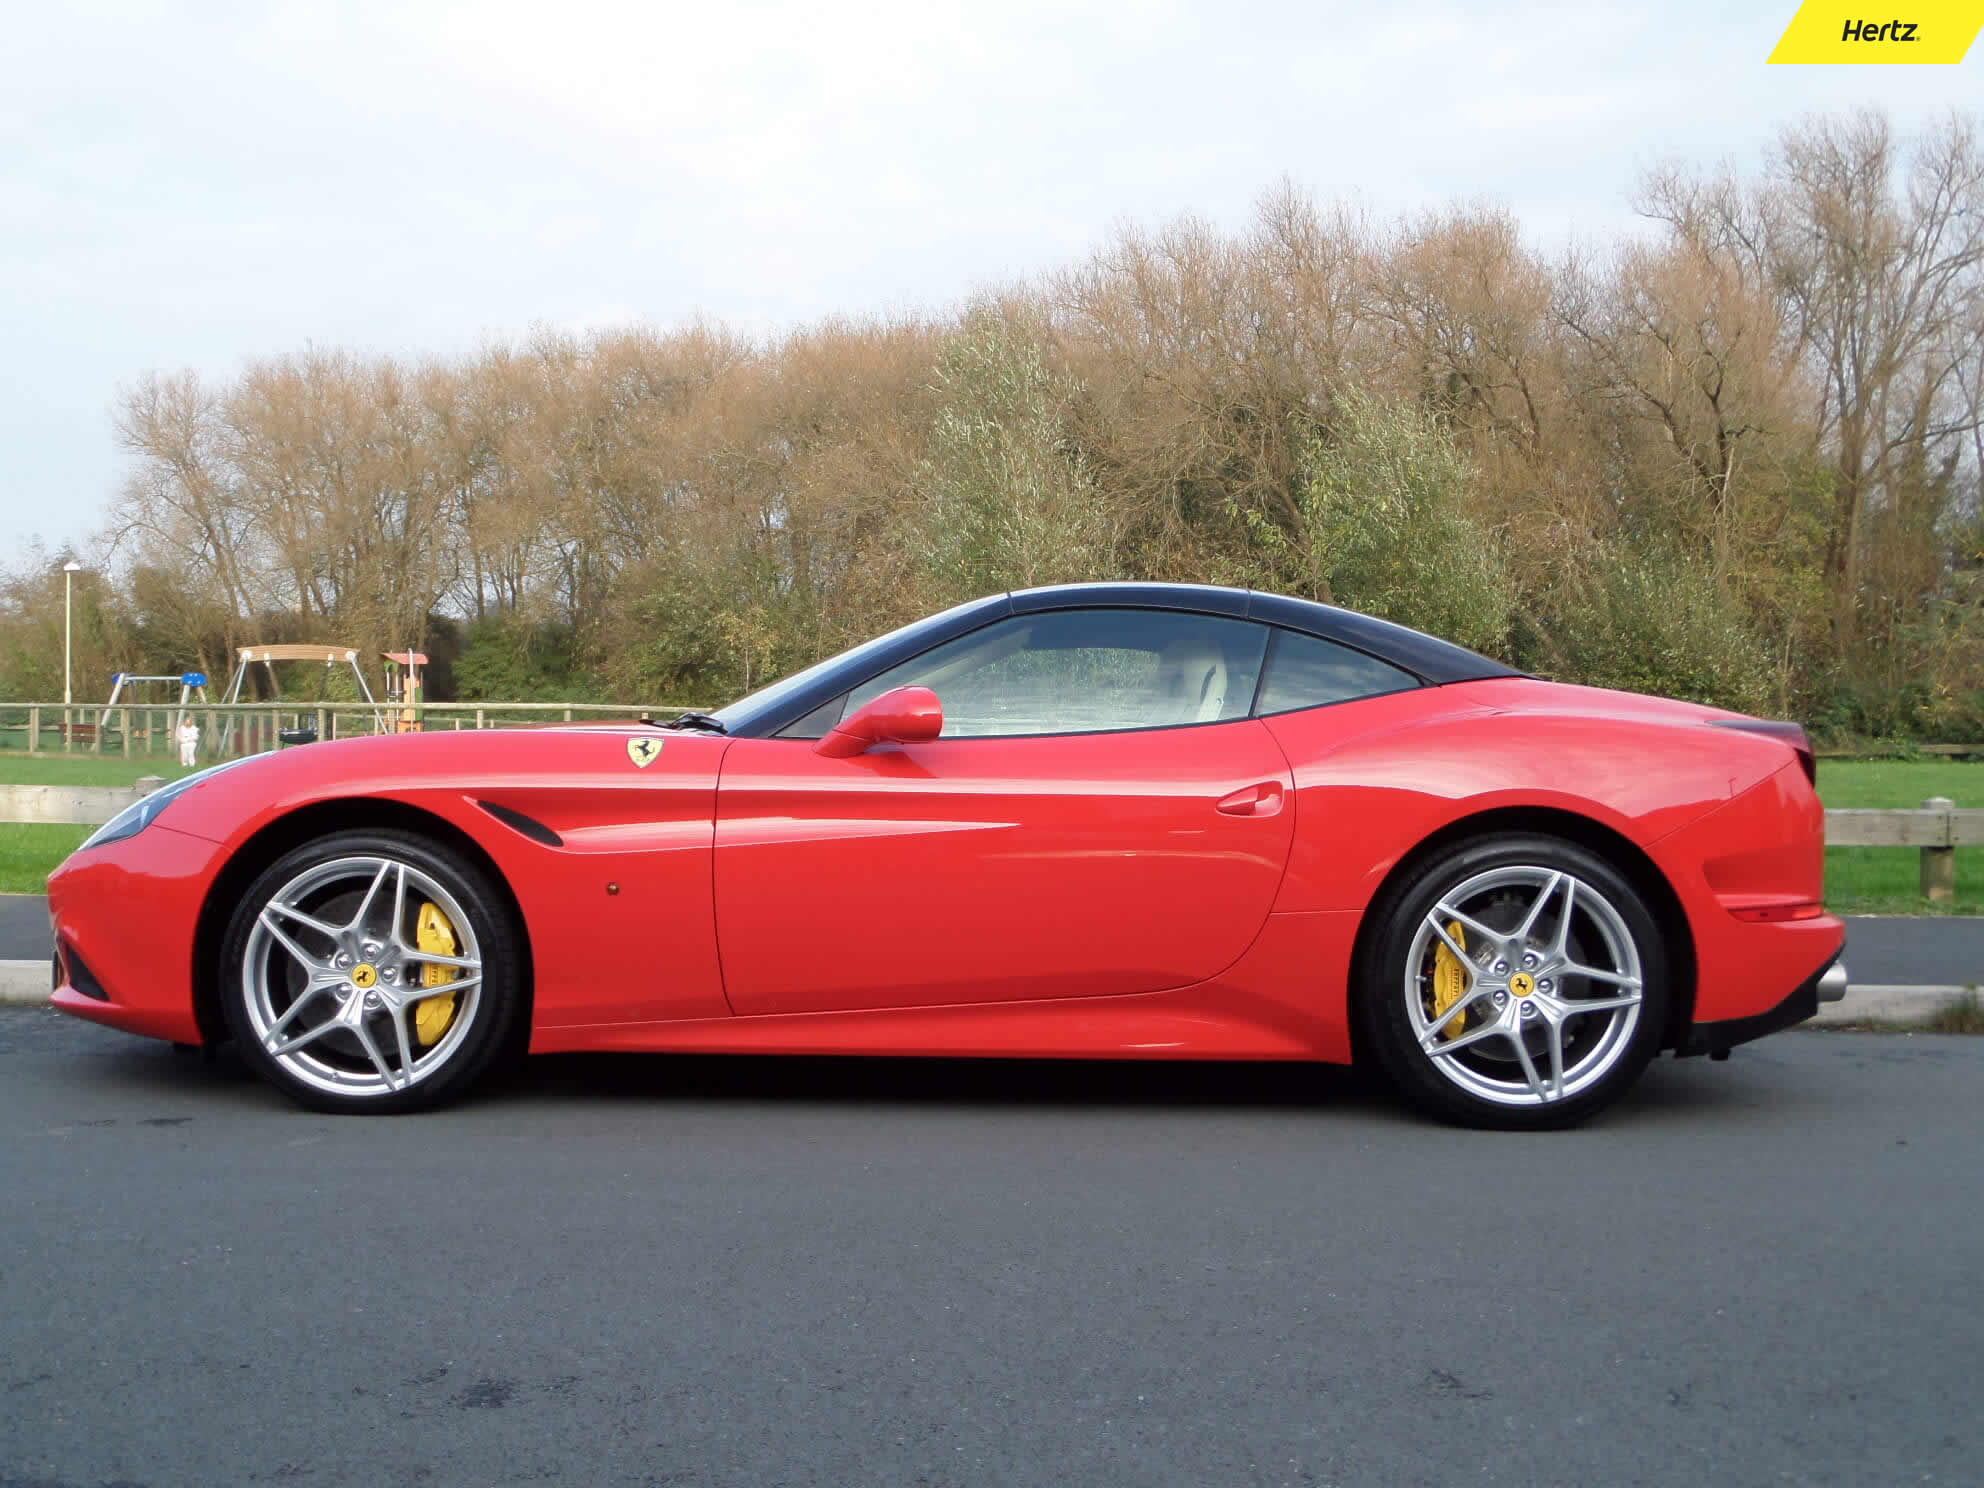 Hire a Ferrari California for just £695